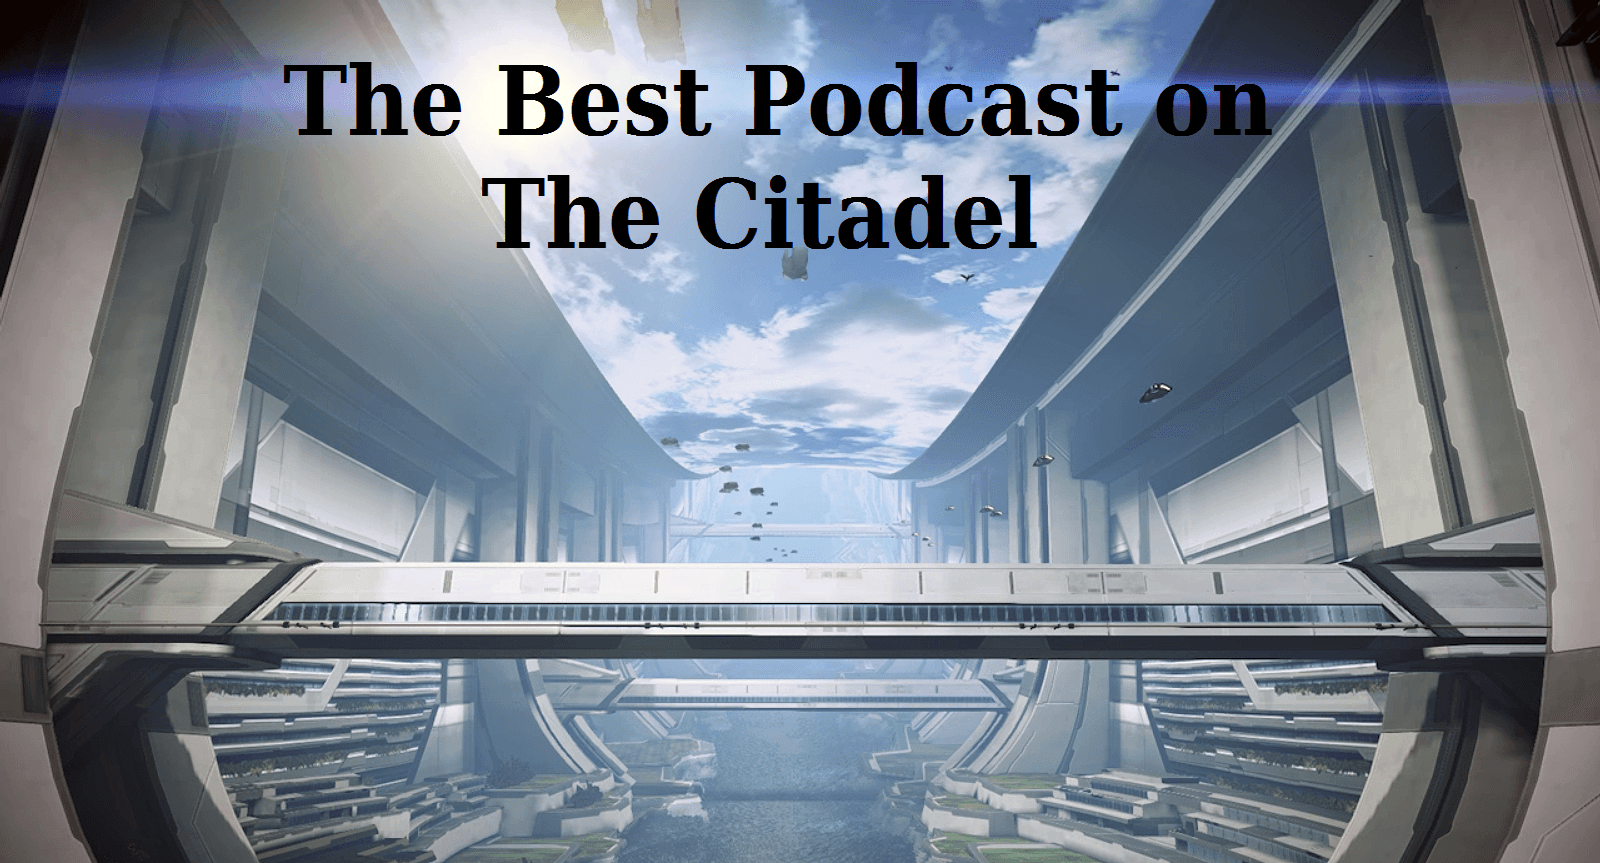 The Best Podcast on the Citadel, Episode 21